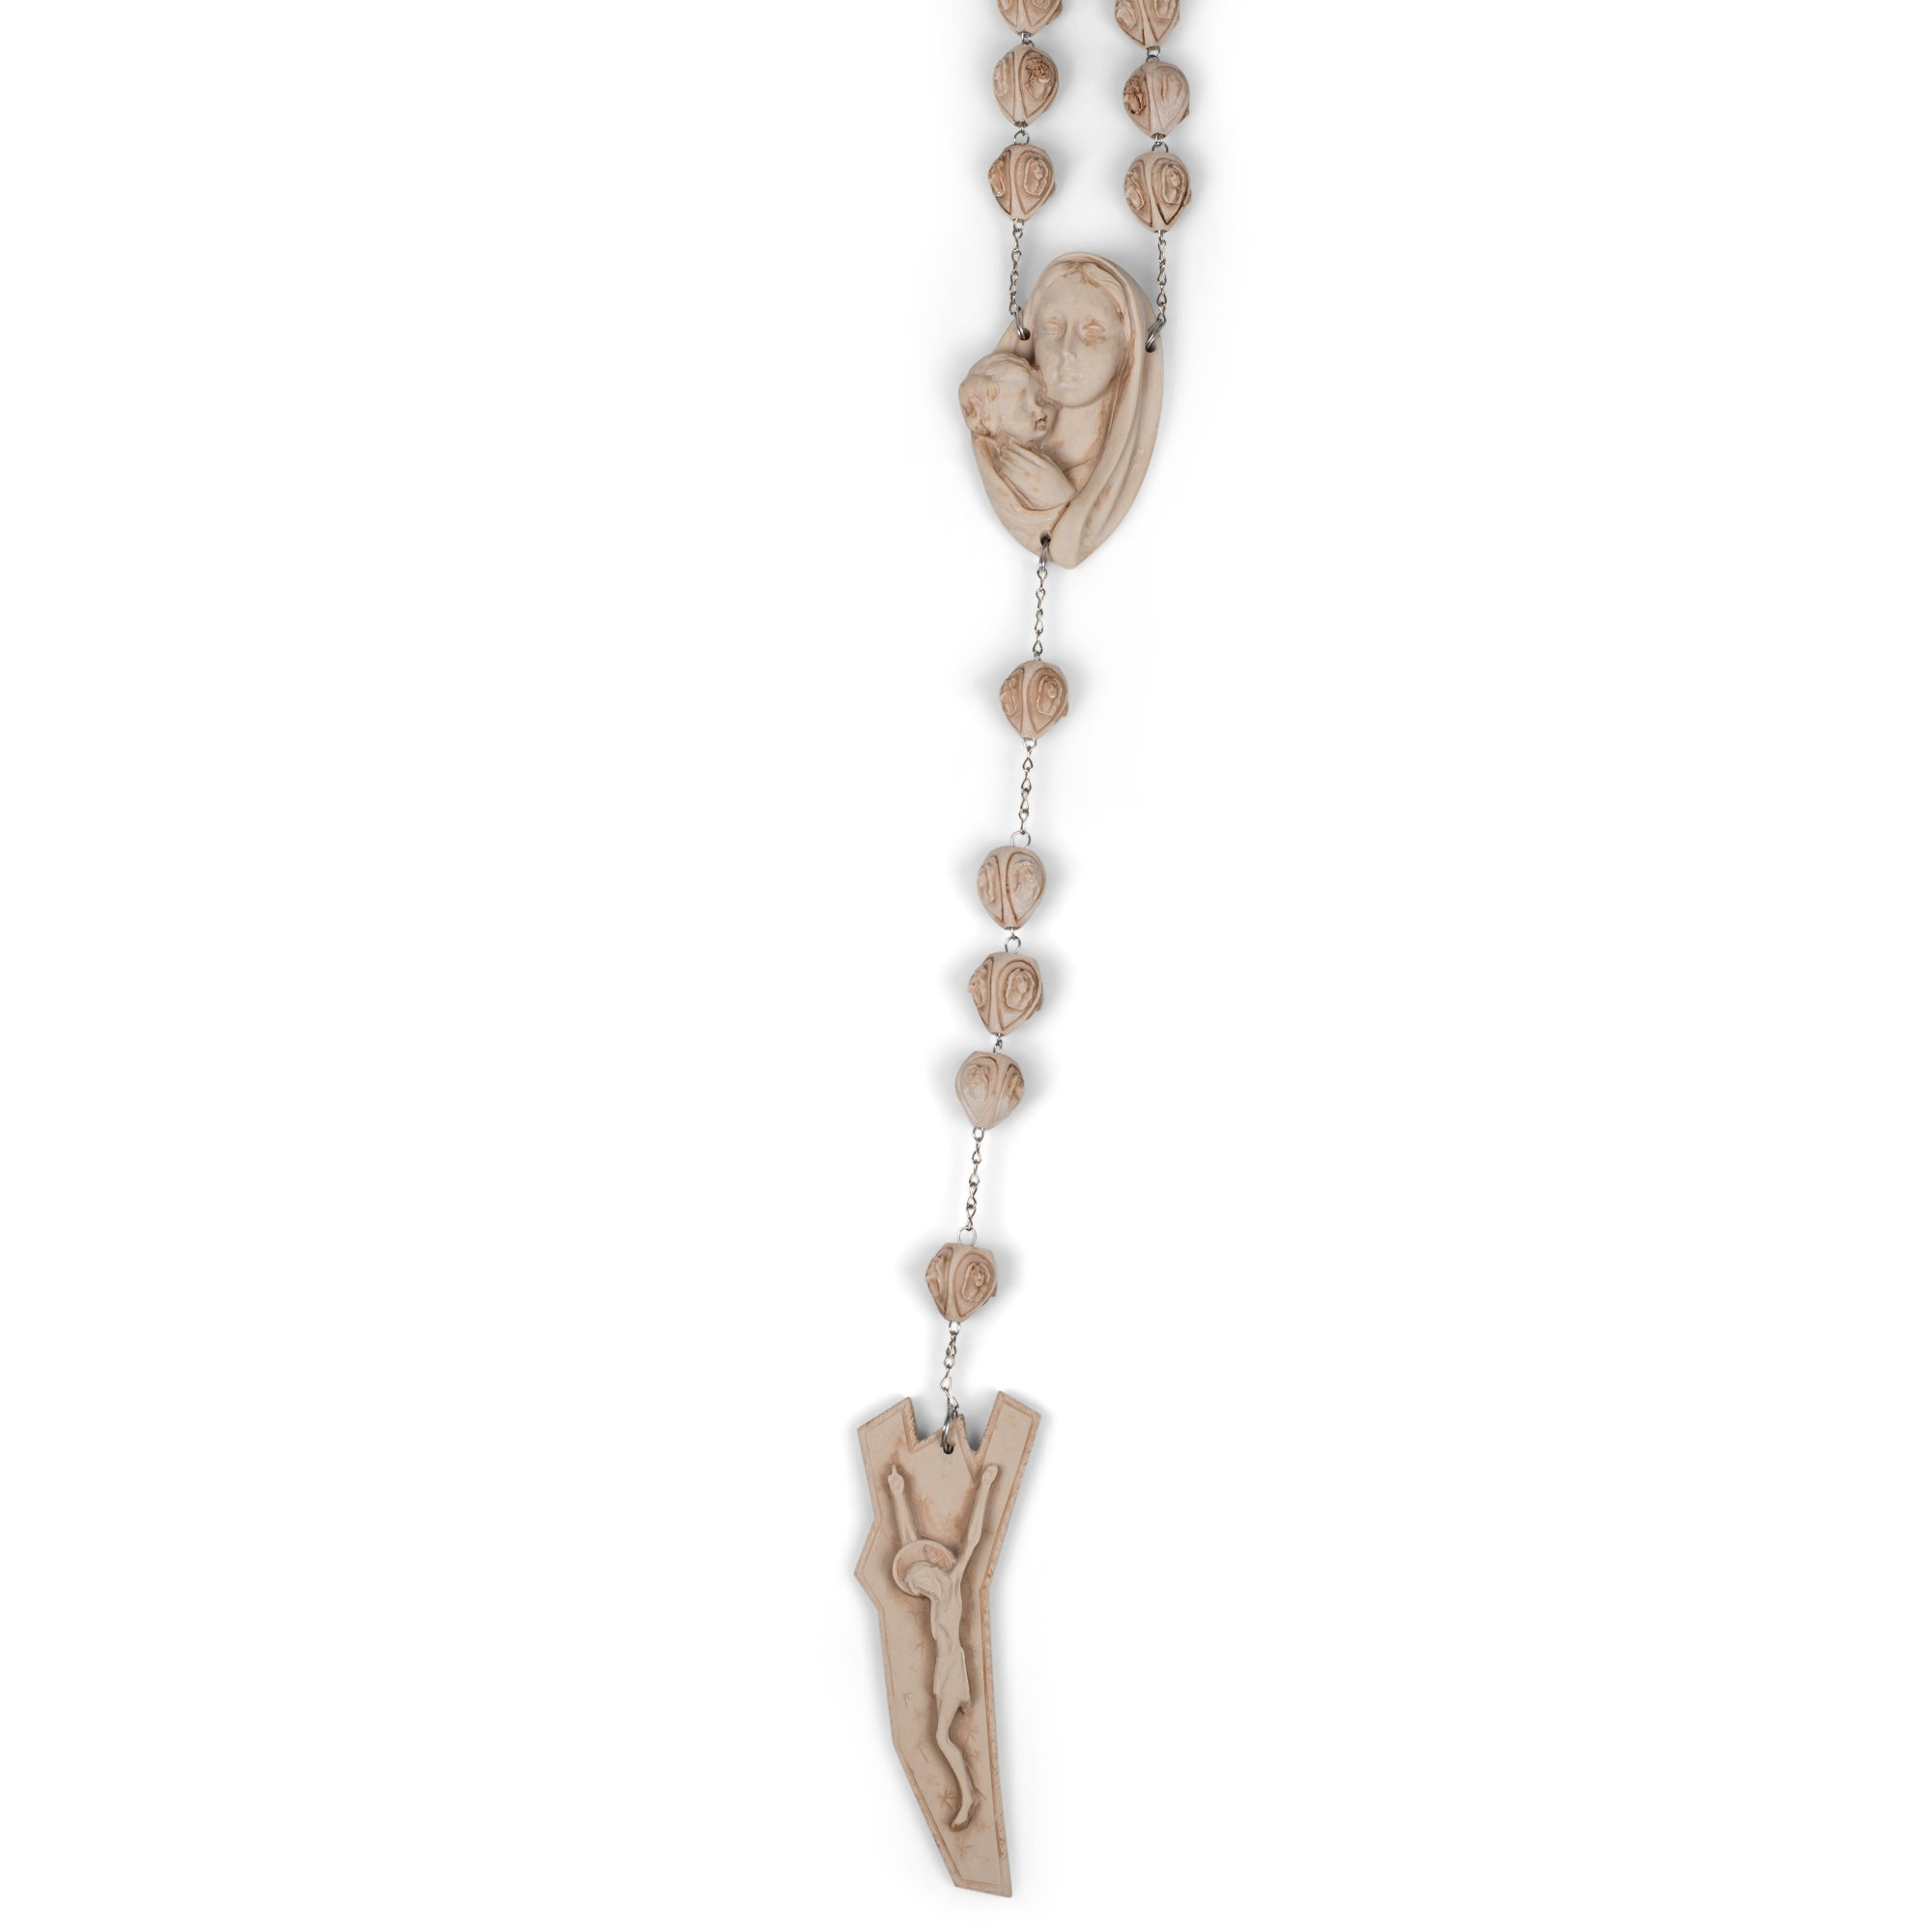 Virgin Mary and Jesus Carved Beads Design 65 Inch Alabasterite Decorative Wall Rosary by Roman